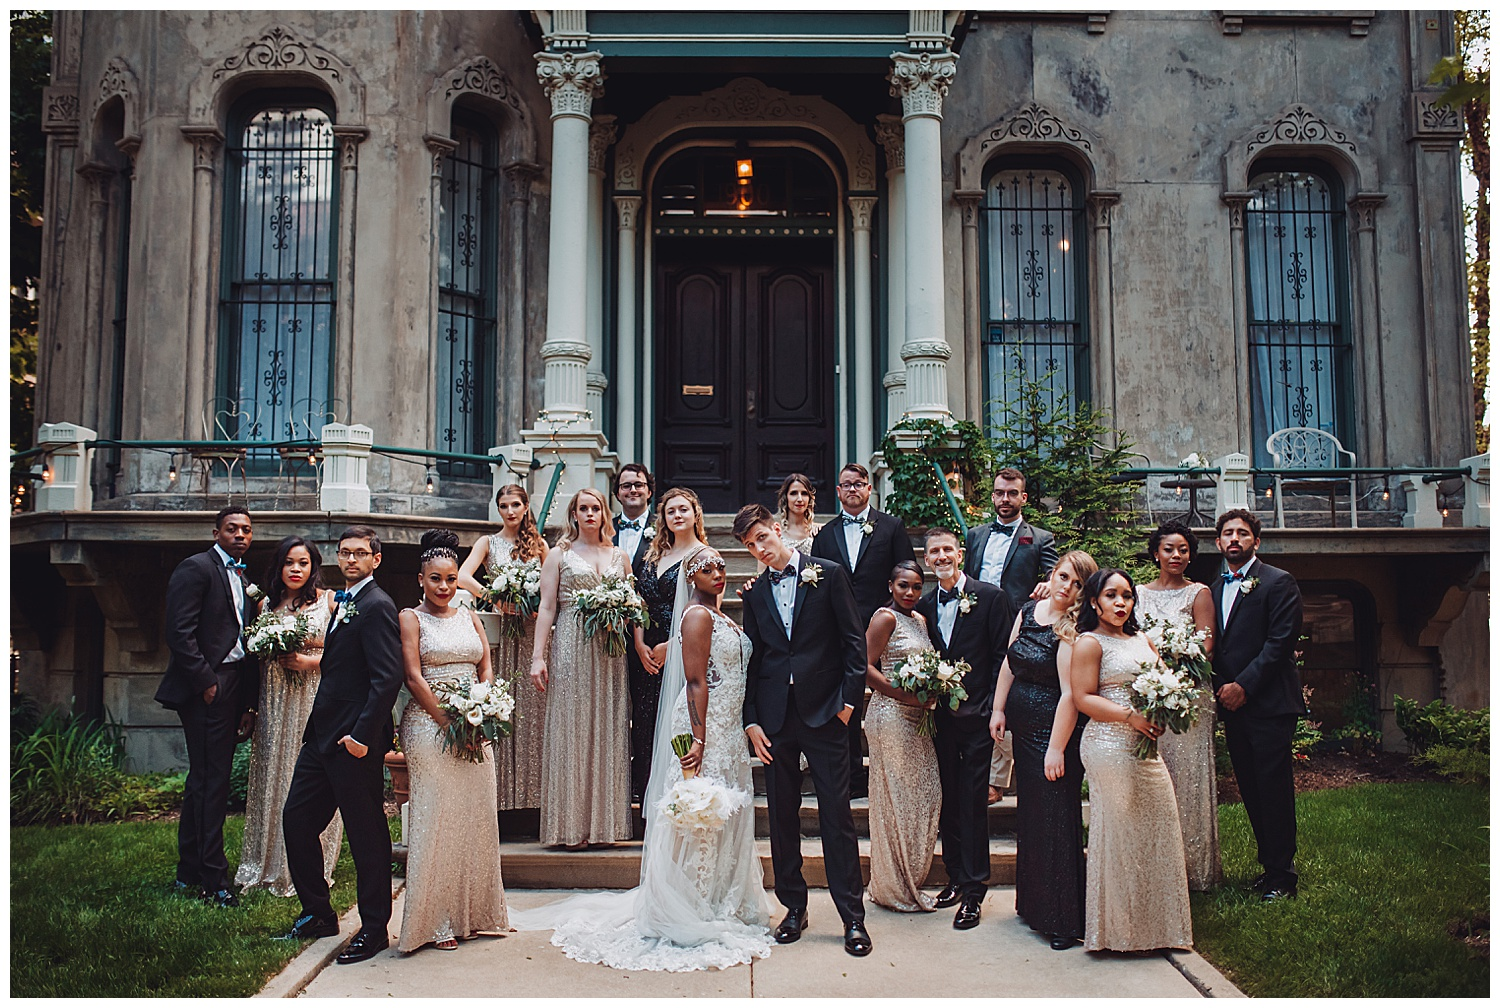 Keith House Chicago Wedding, The Adamkovi, boss, unique bridal party group photo, vanity fair,